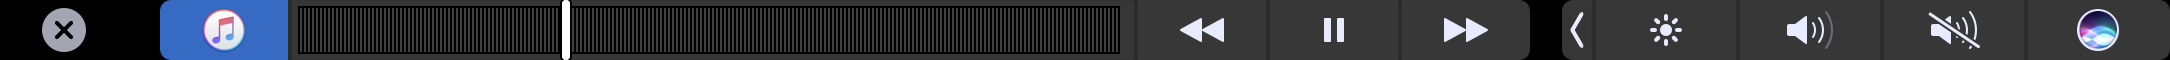 Touch Bar Shot 2017-06-14 at 6.59.50 AM.png